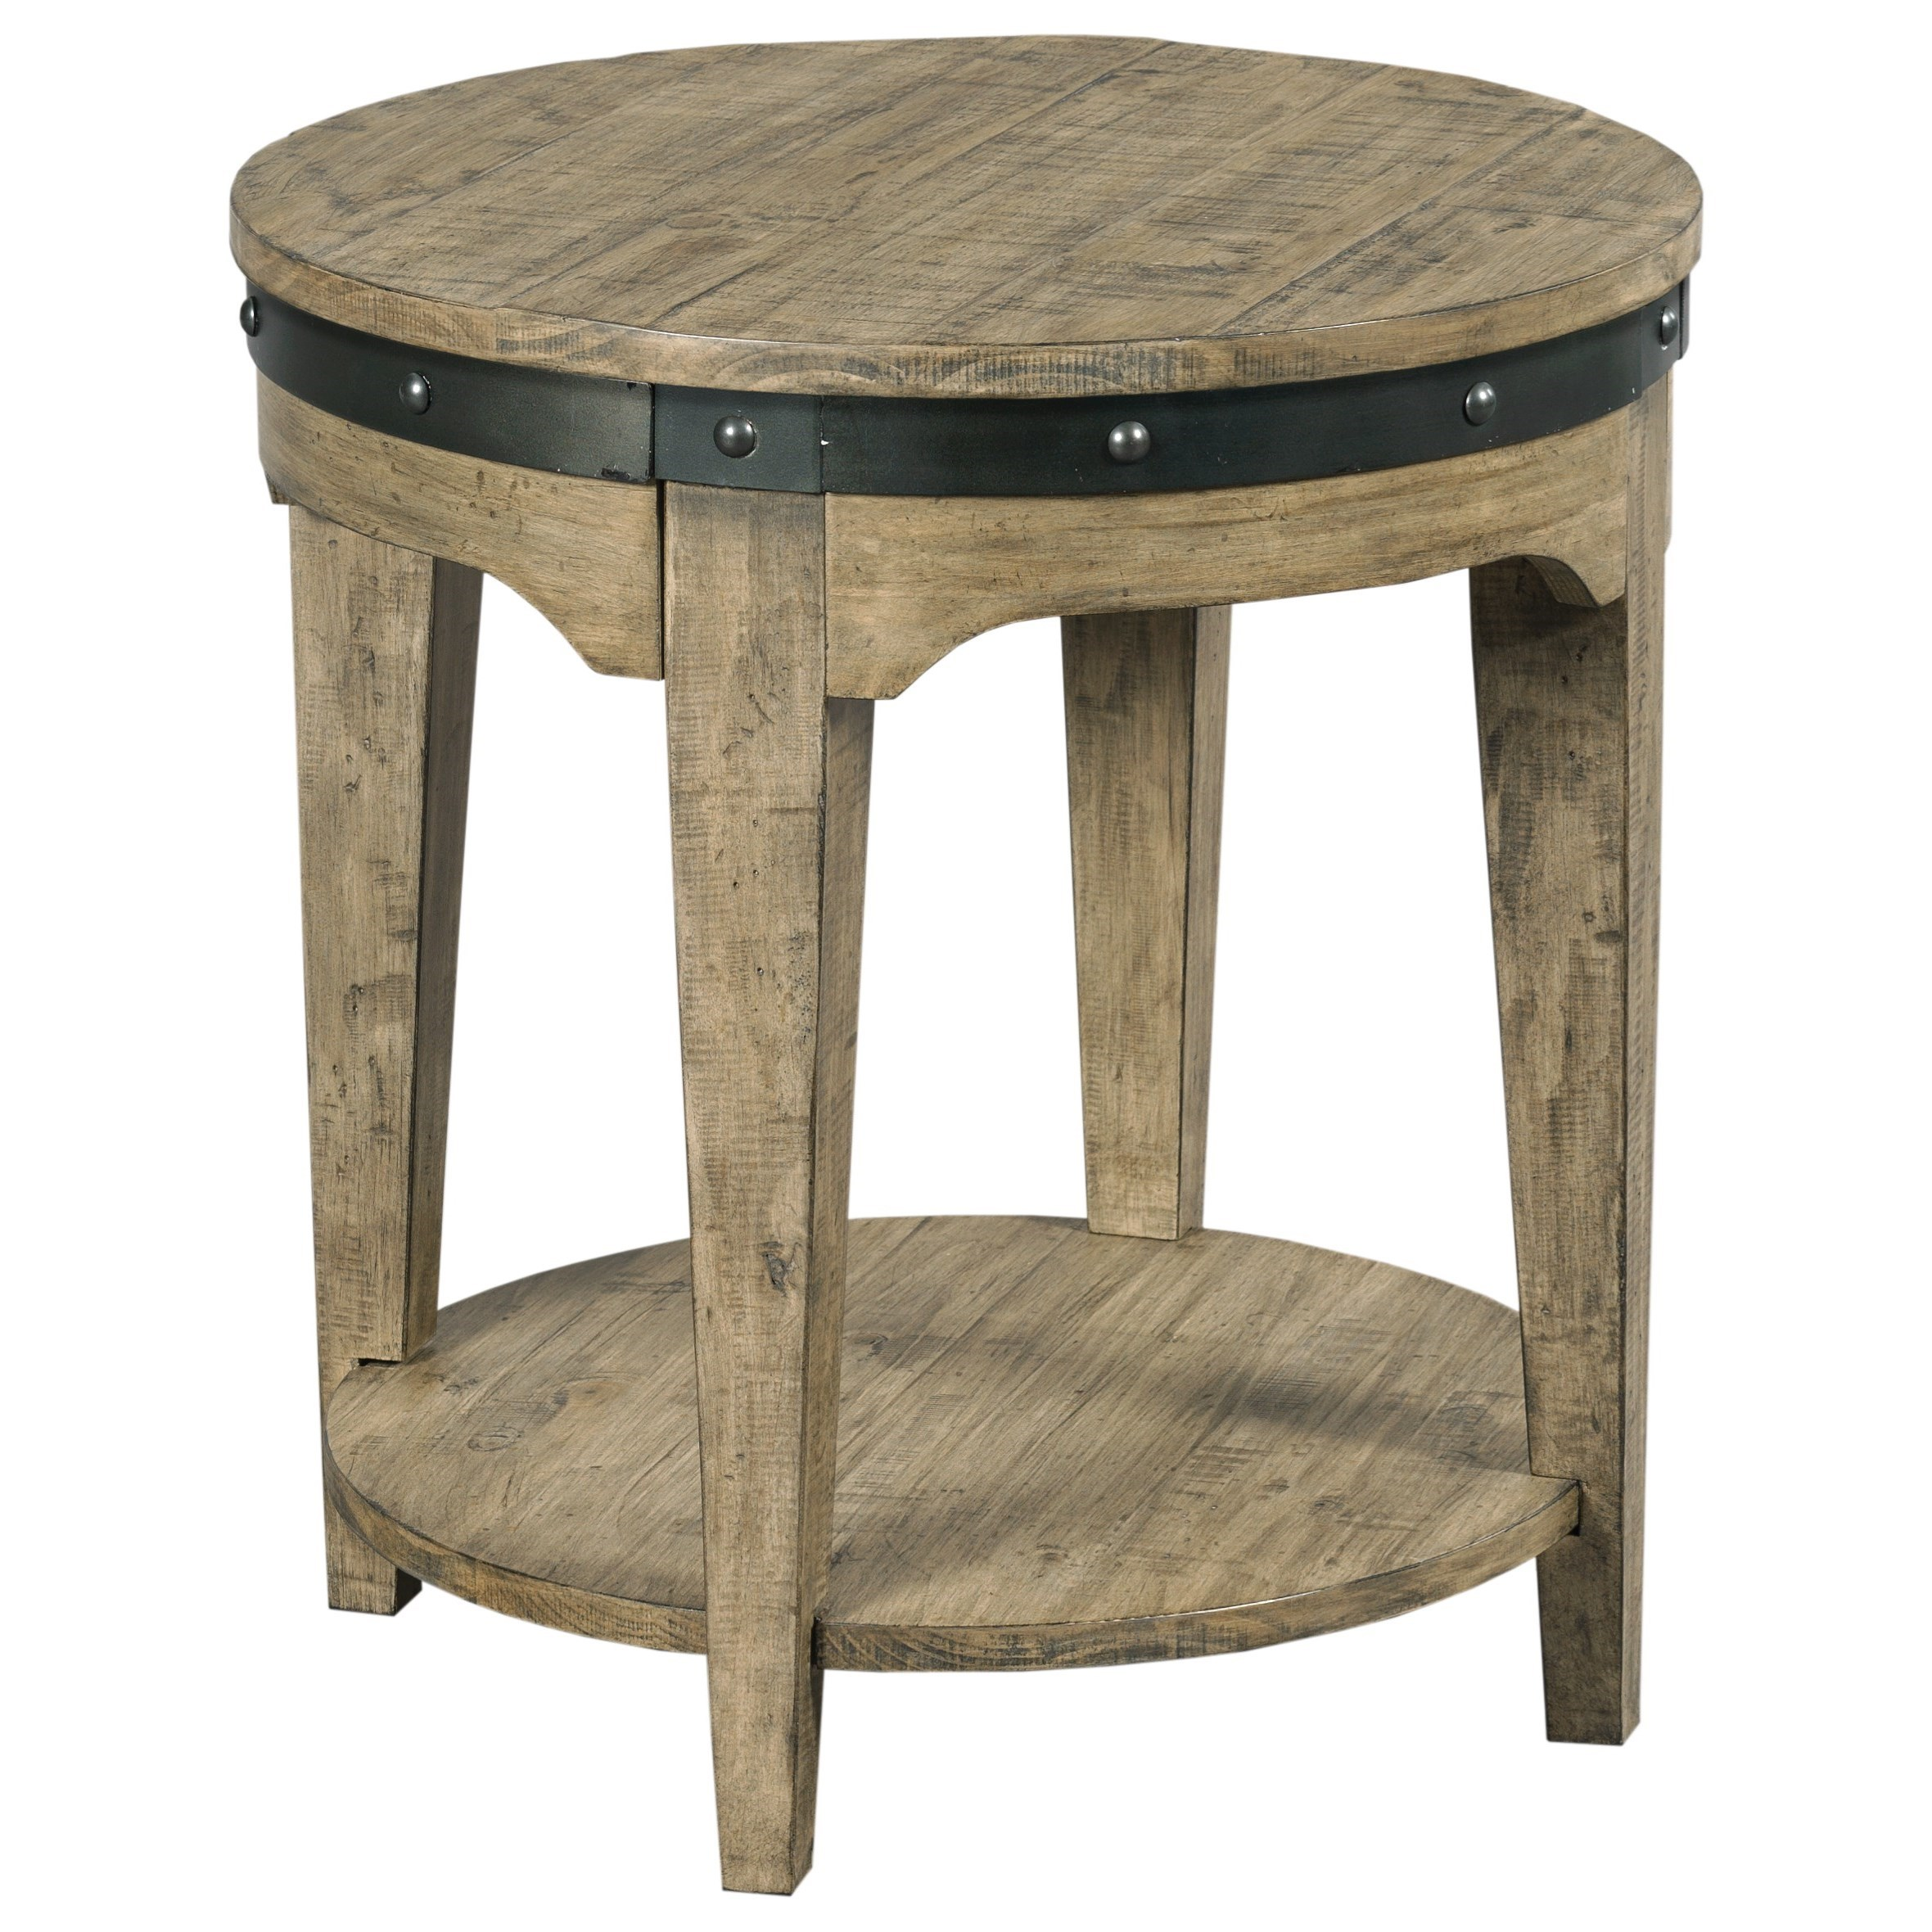 Plank Road Artisans Round End Table                     at Stoney Creek Furniture